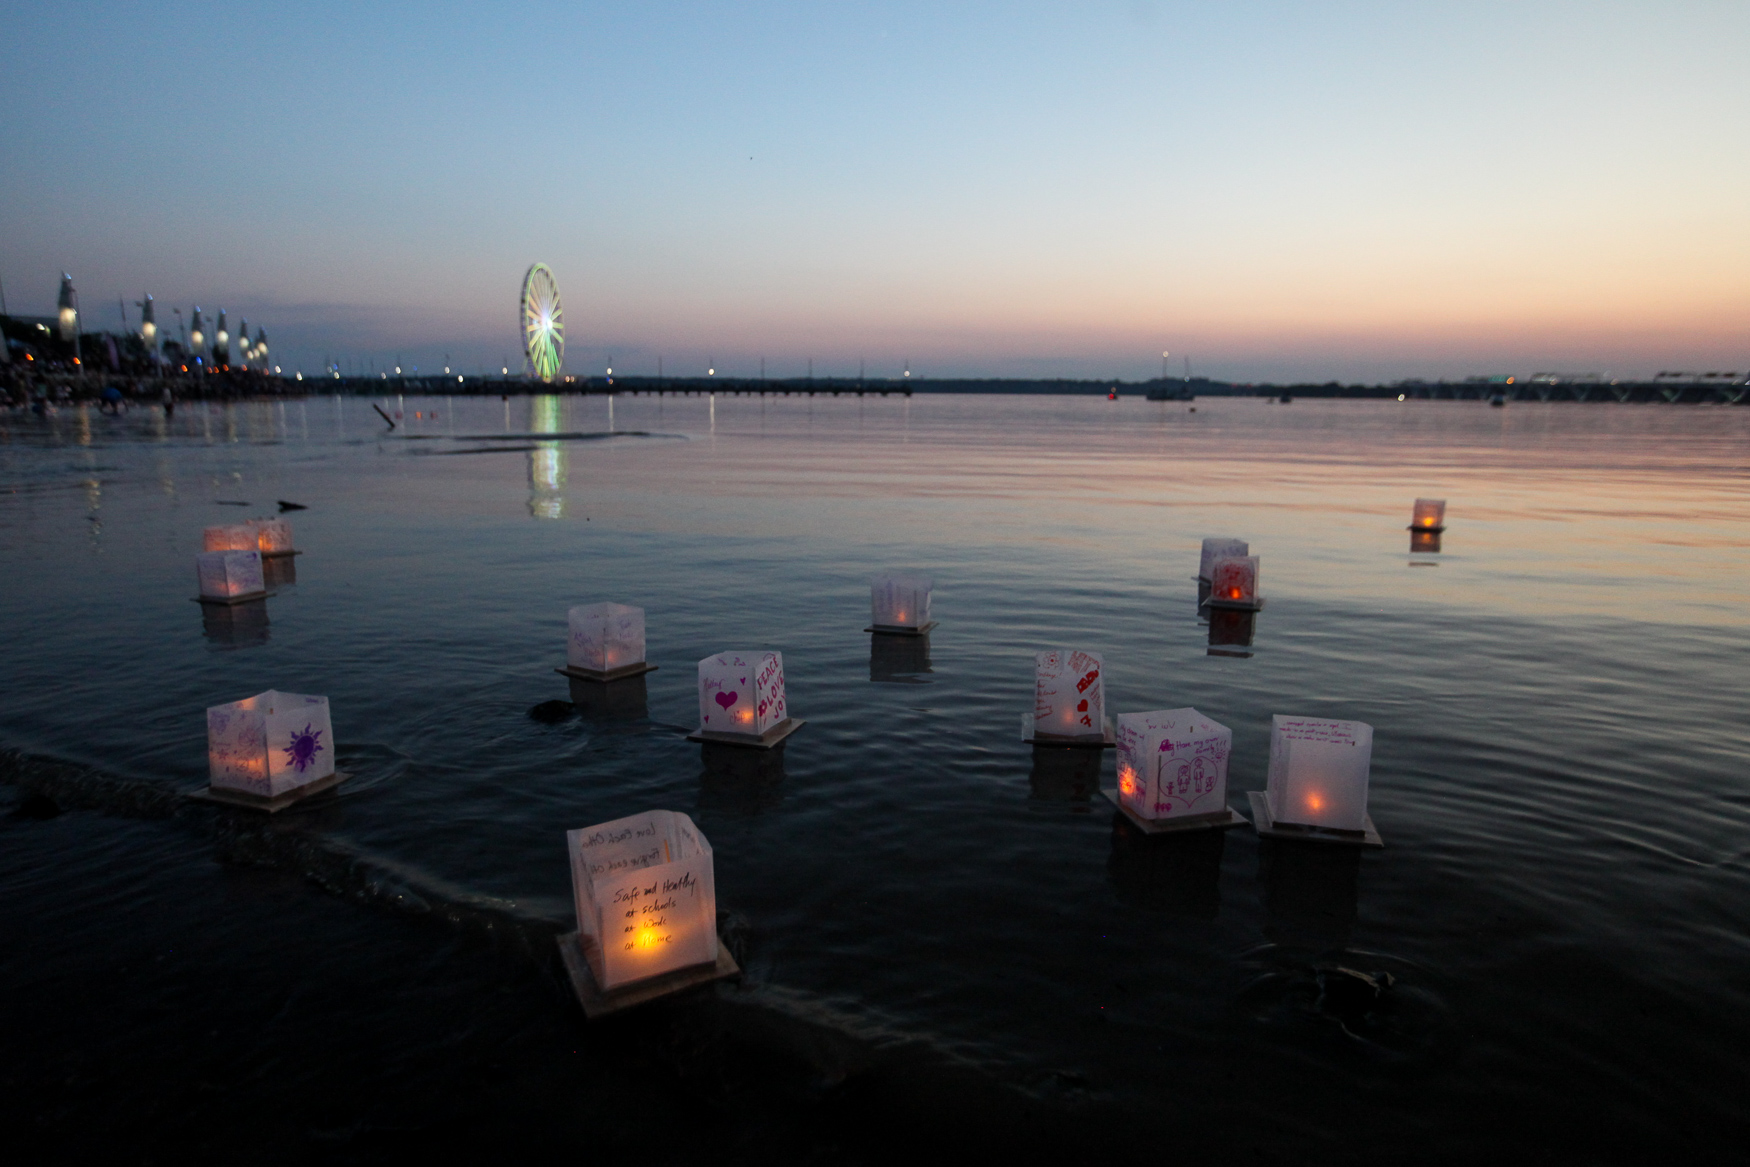 Thousands of paper lanterns inscribed with drawings, well wishes, hopes and private letters were set afloat on National Harbor on Saturday, August 4. The Water Lantern Festival, which is put on by the production company One World, gives guests the chance to enjoy some ultra-Instagrammable catharsis by encouraging them to put their hopes, dreams and worries on the paper lanterns and setting them out to float. The lanterns are illuminated by flickering LED lights, so the production team can pick up the lanterns later. (Amanda Andrade-Rhoades/DC Refined)